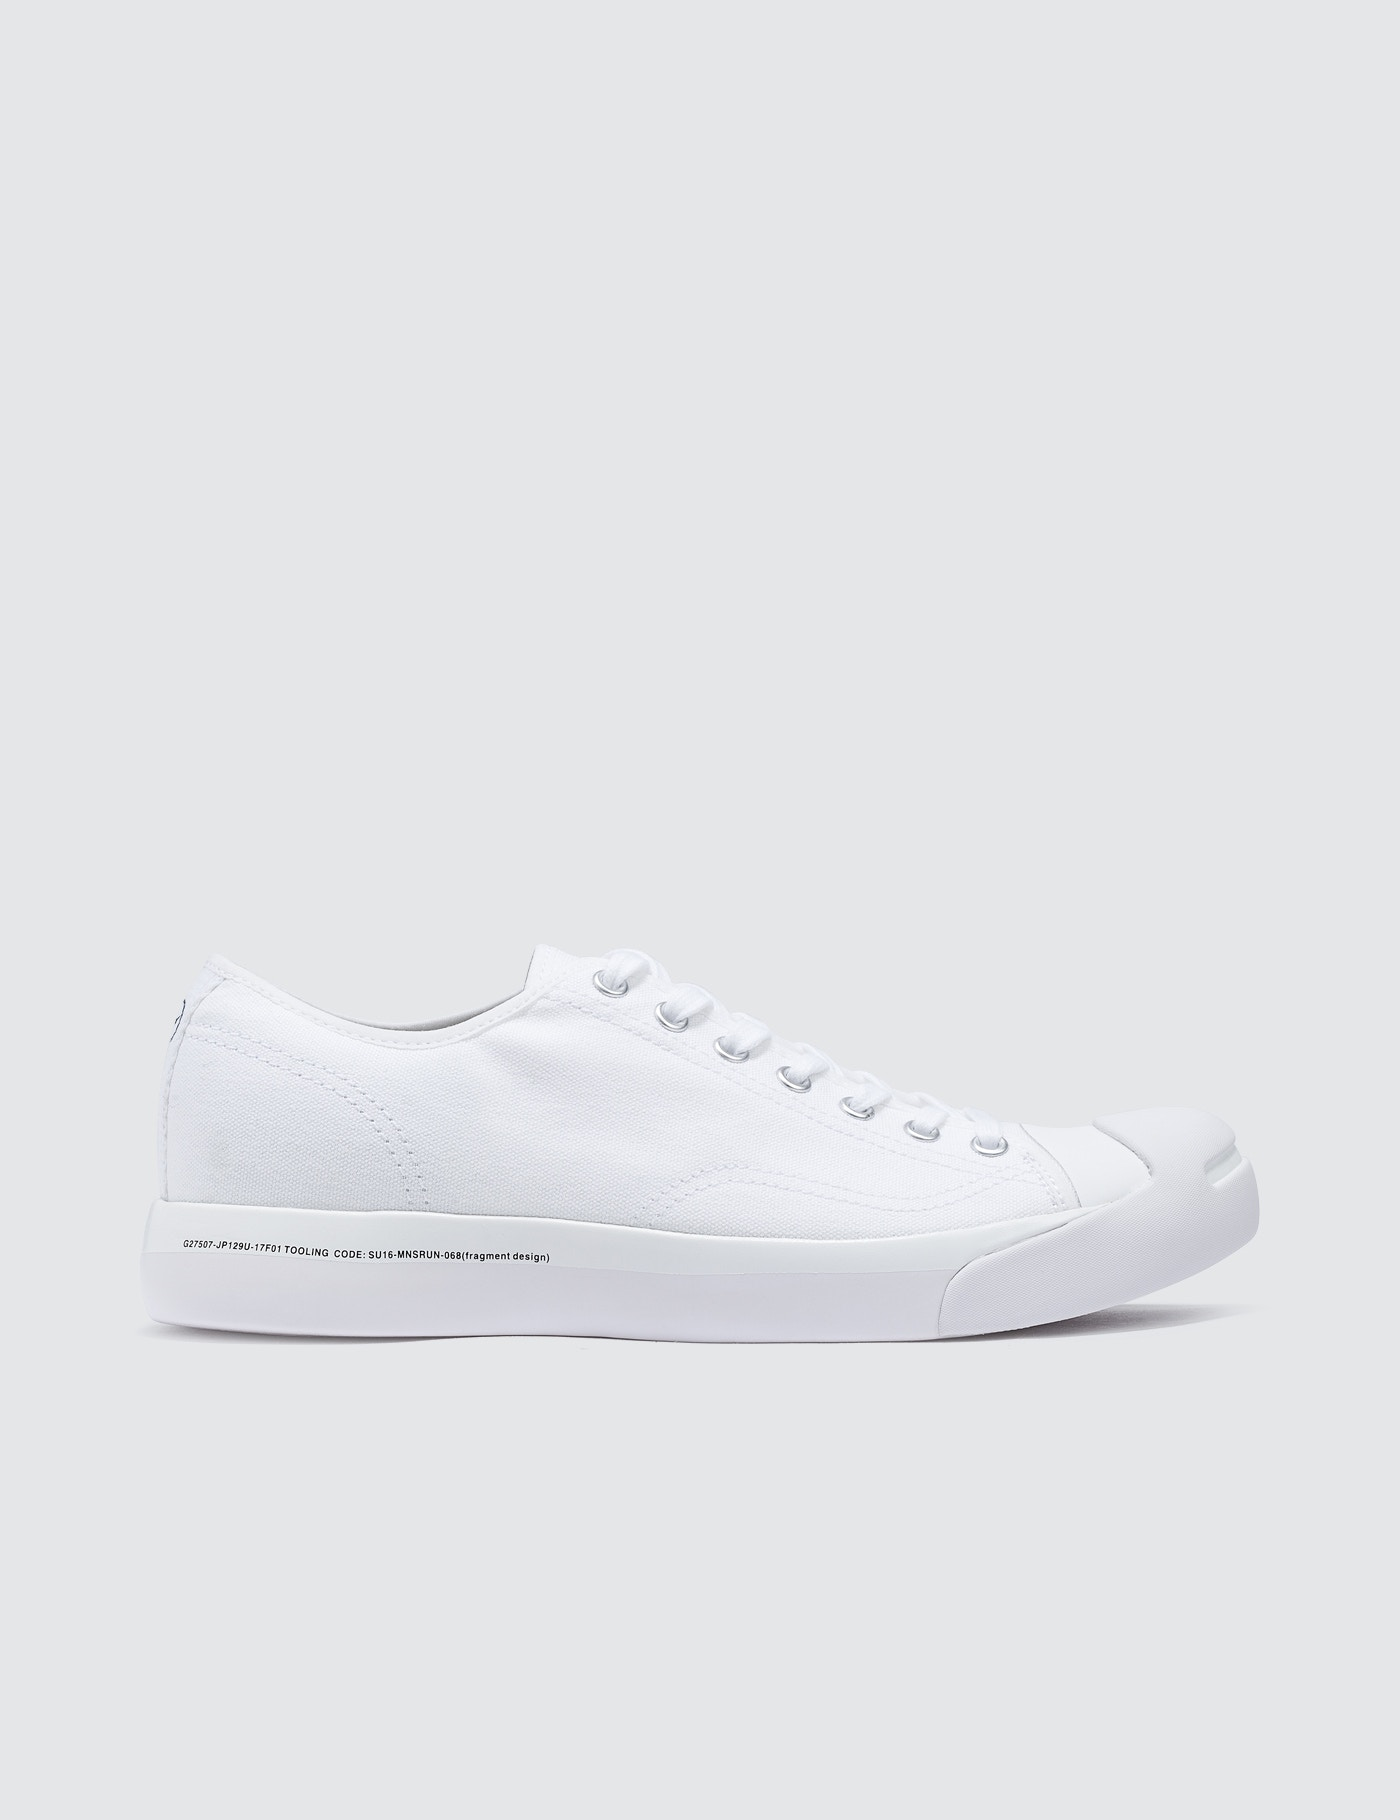 33f159707b4930 Buy Original Converse Fragment X Jack Purcell Modern OX at Indonesia ...